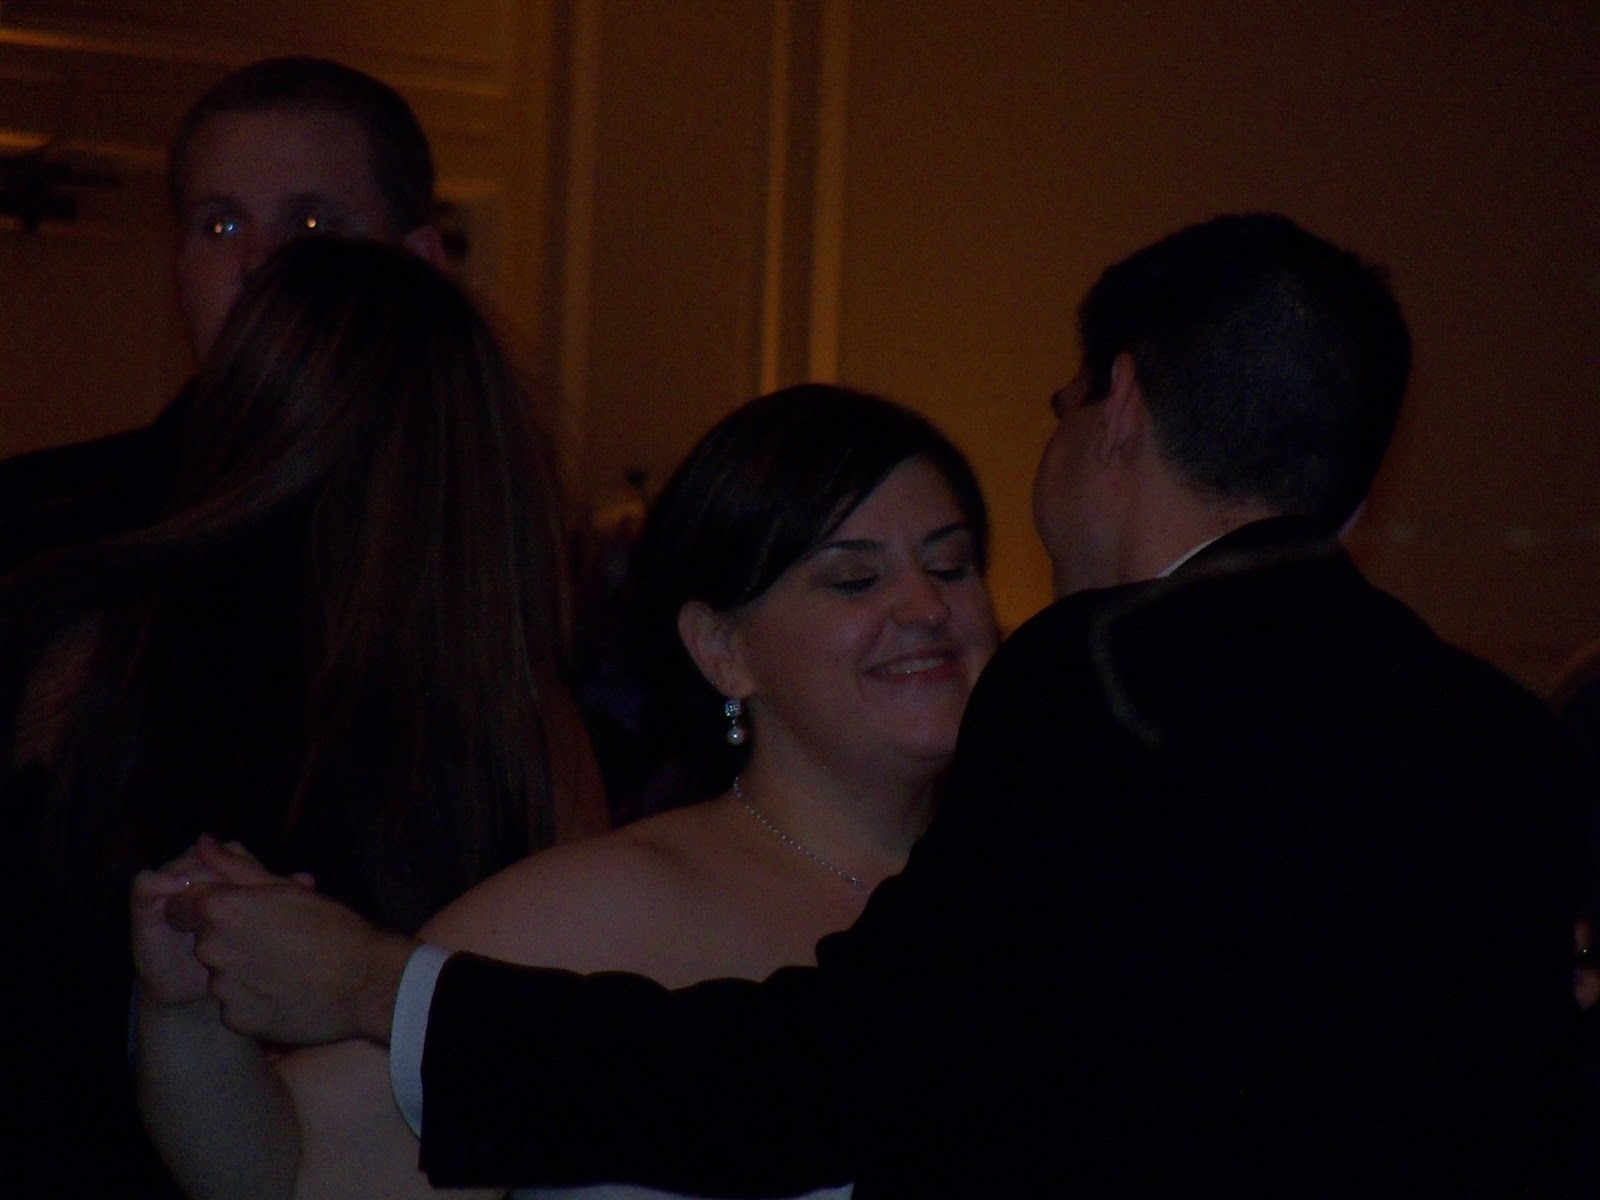 Megan Neal and Mark Suarez wedding - 100_8484.JPG